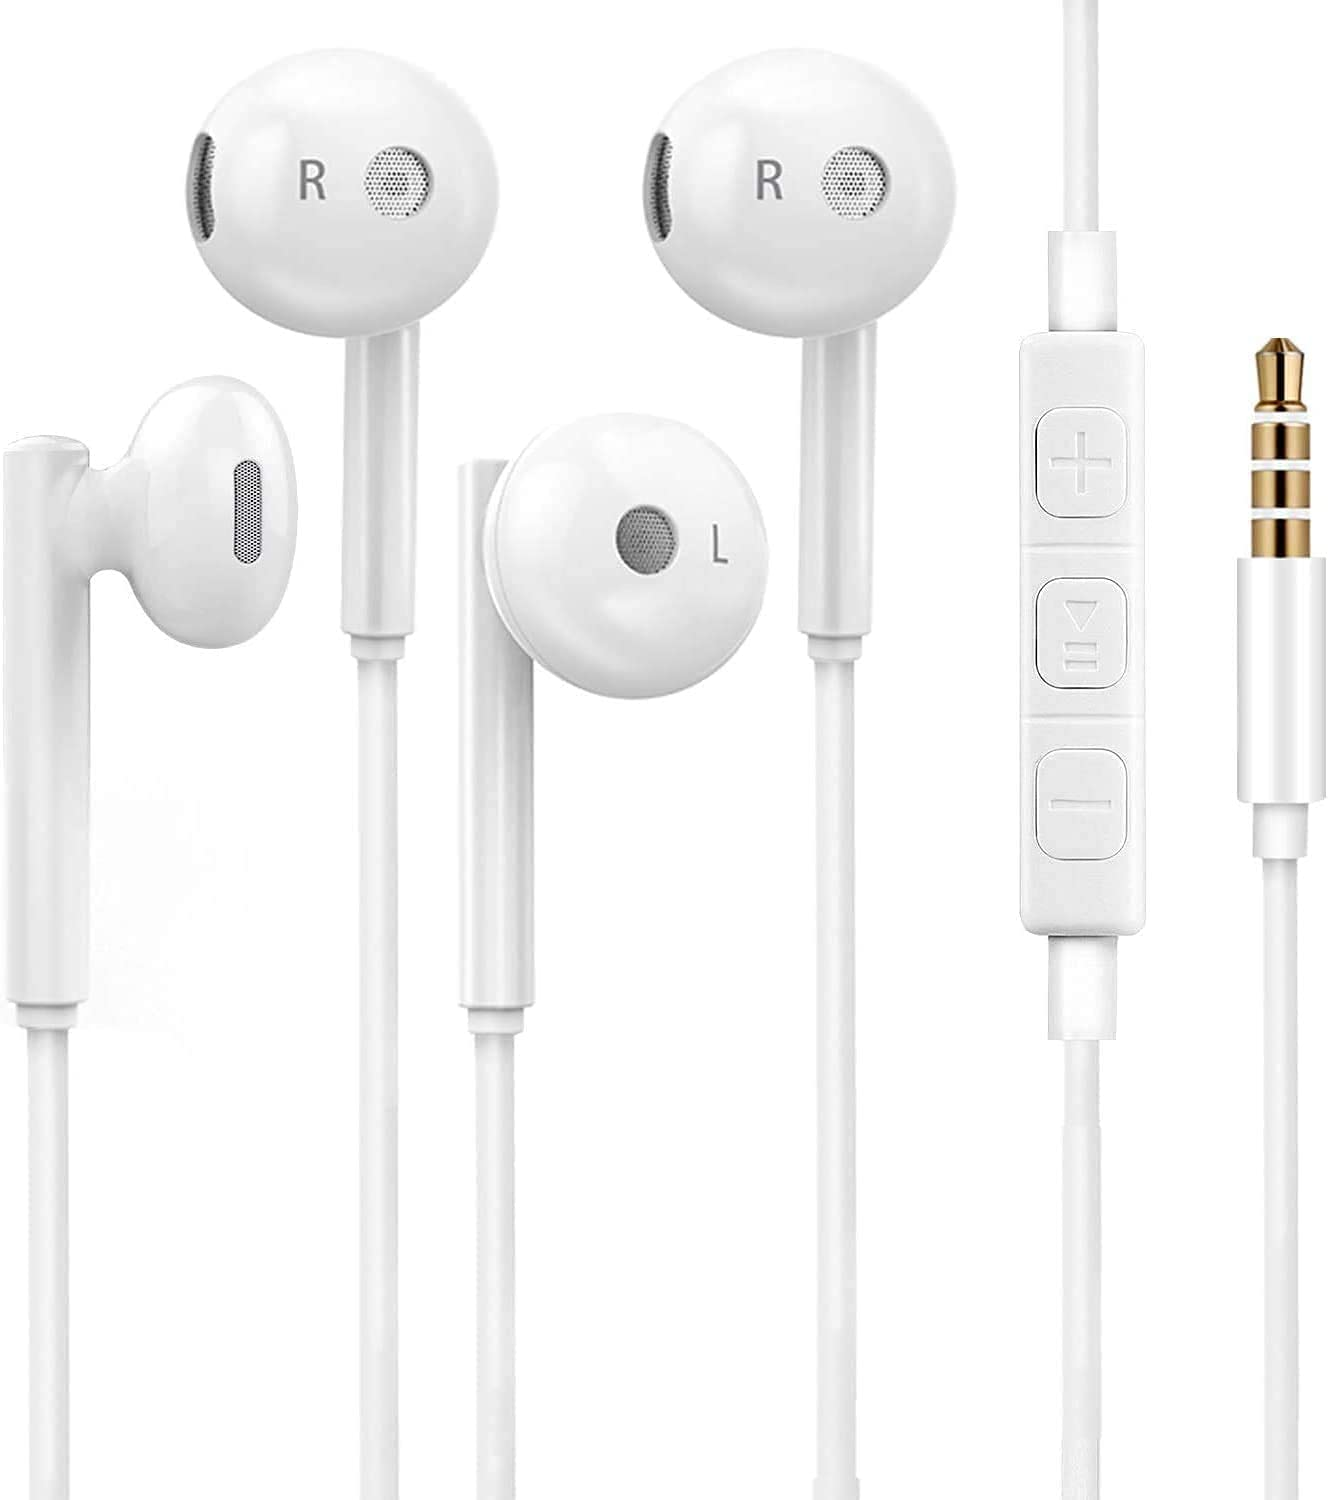 2 Pack Wired Earbuds Headphones with Microphone, Earbuds Wired Stereo Earphones in-Ear Headphones Bass Earbuds, Compatible iPhone and Android, Pod, Pad, MP3 Players, Fits Most 3.5mm Jack